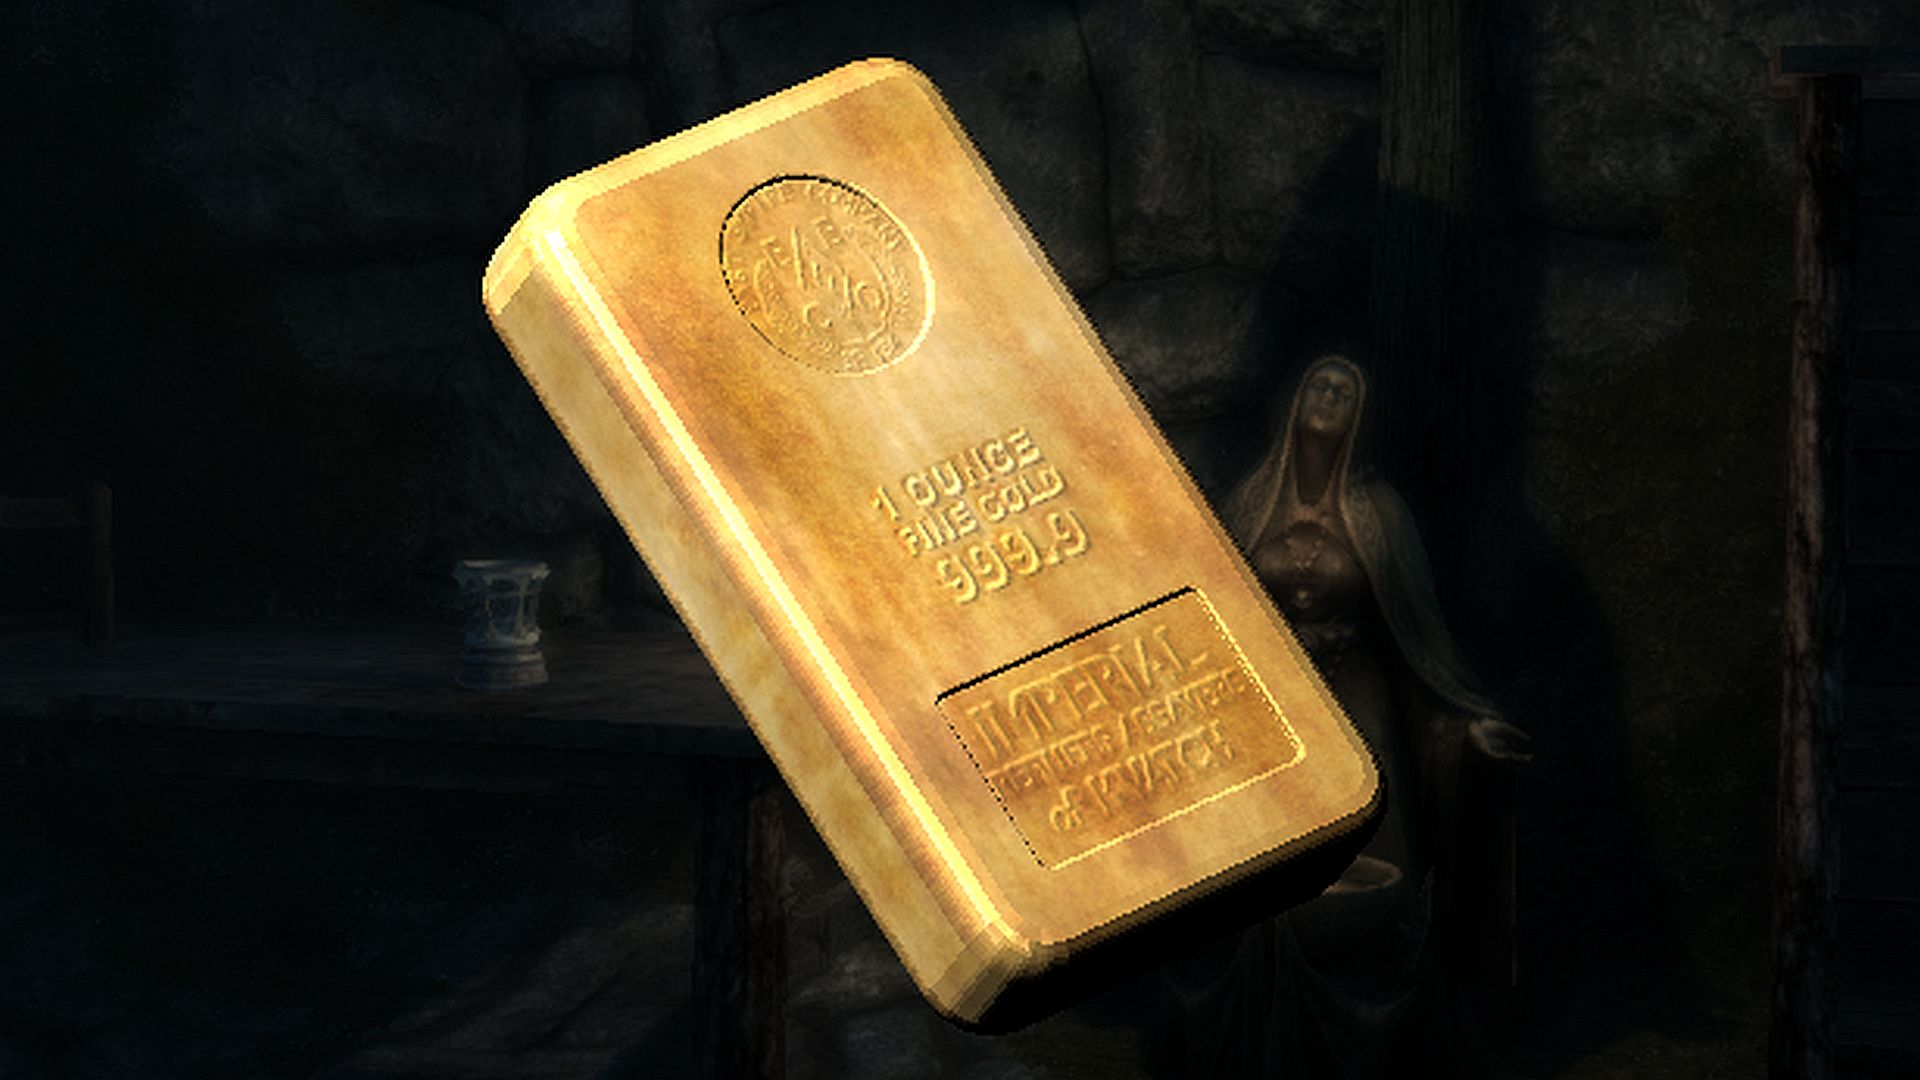 Finally A Skyrim Mod To Fix The Size Weight And Value Of Tamriel S Precious Metals Pcgamesn The fourth tier material, above silver ingot and below adamantite ingot. skyrim mod to fix the size weight